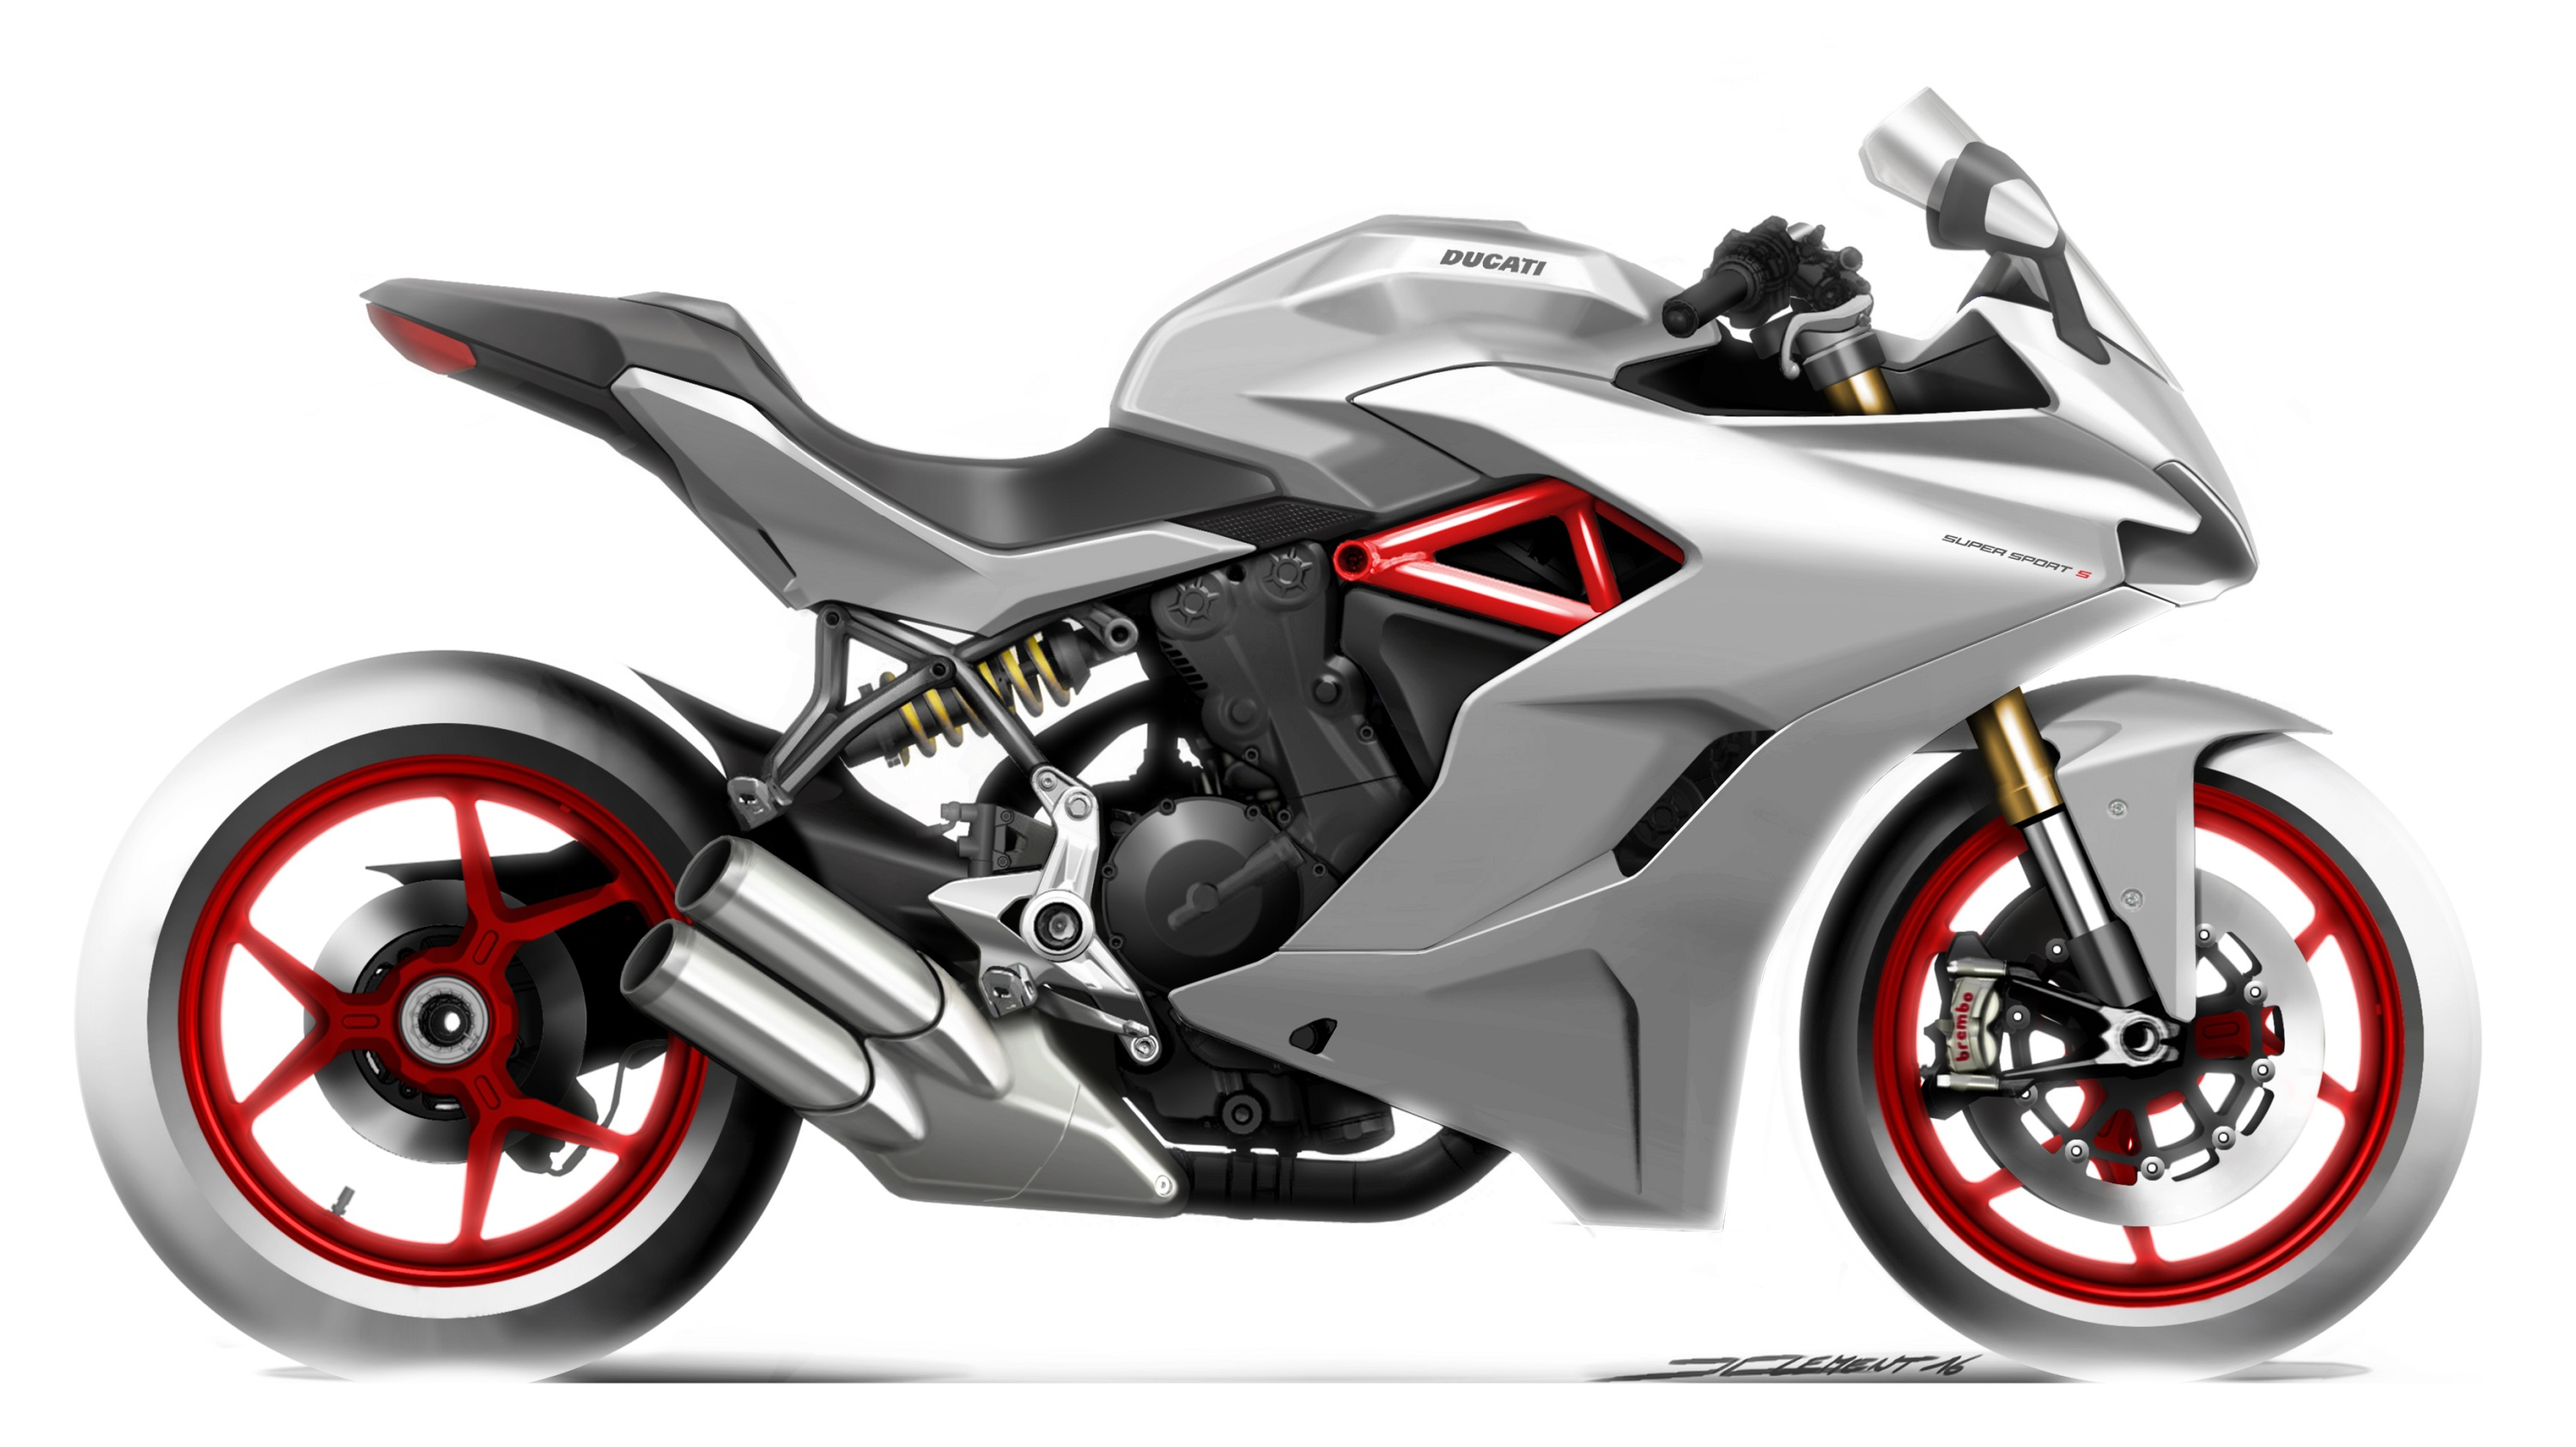 ducati supersport s (2017 on) for sale & price guide | thebikemarket